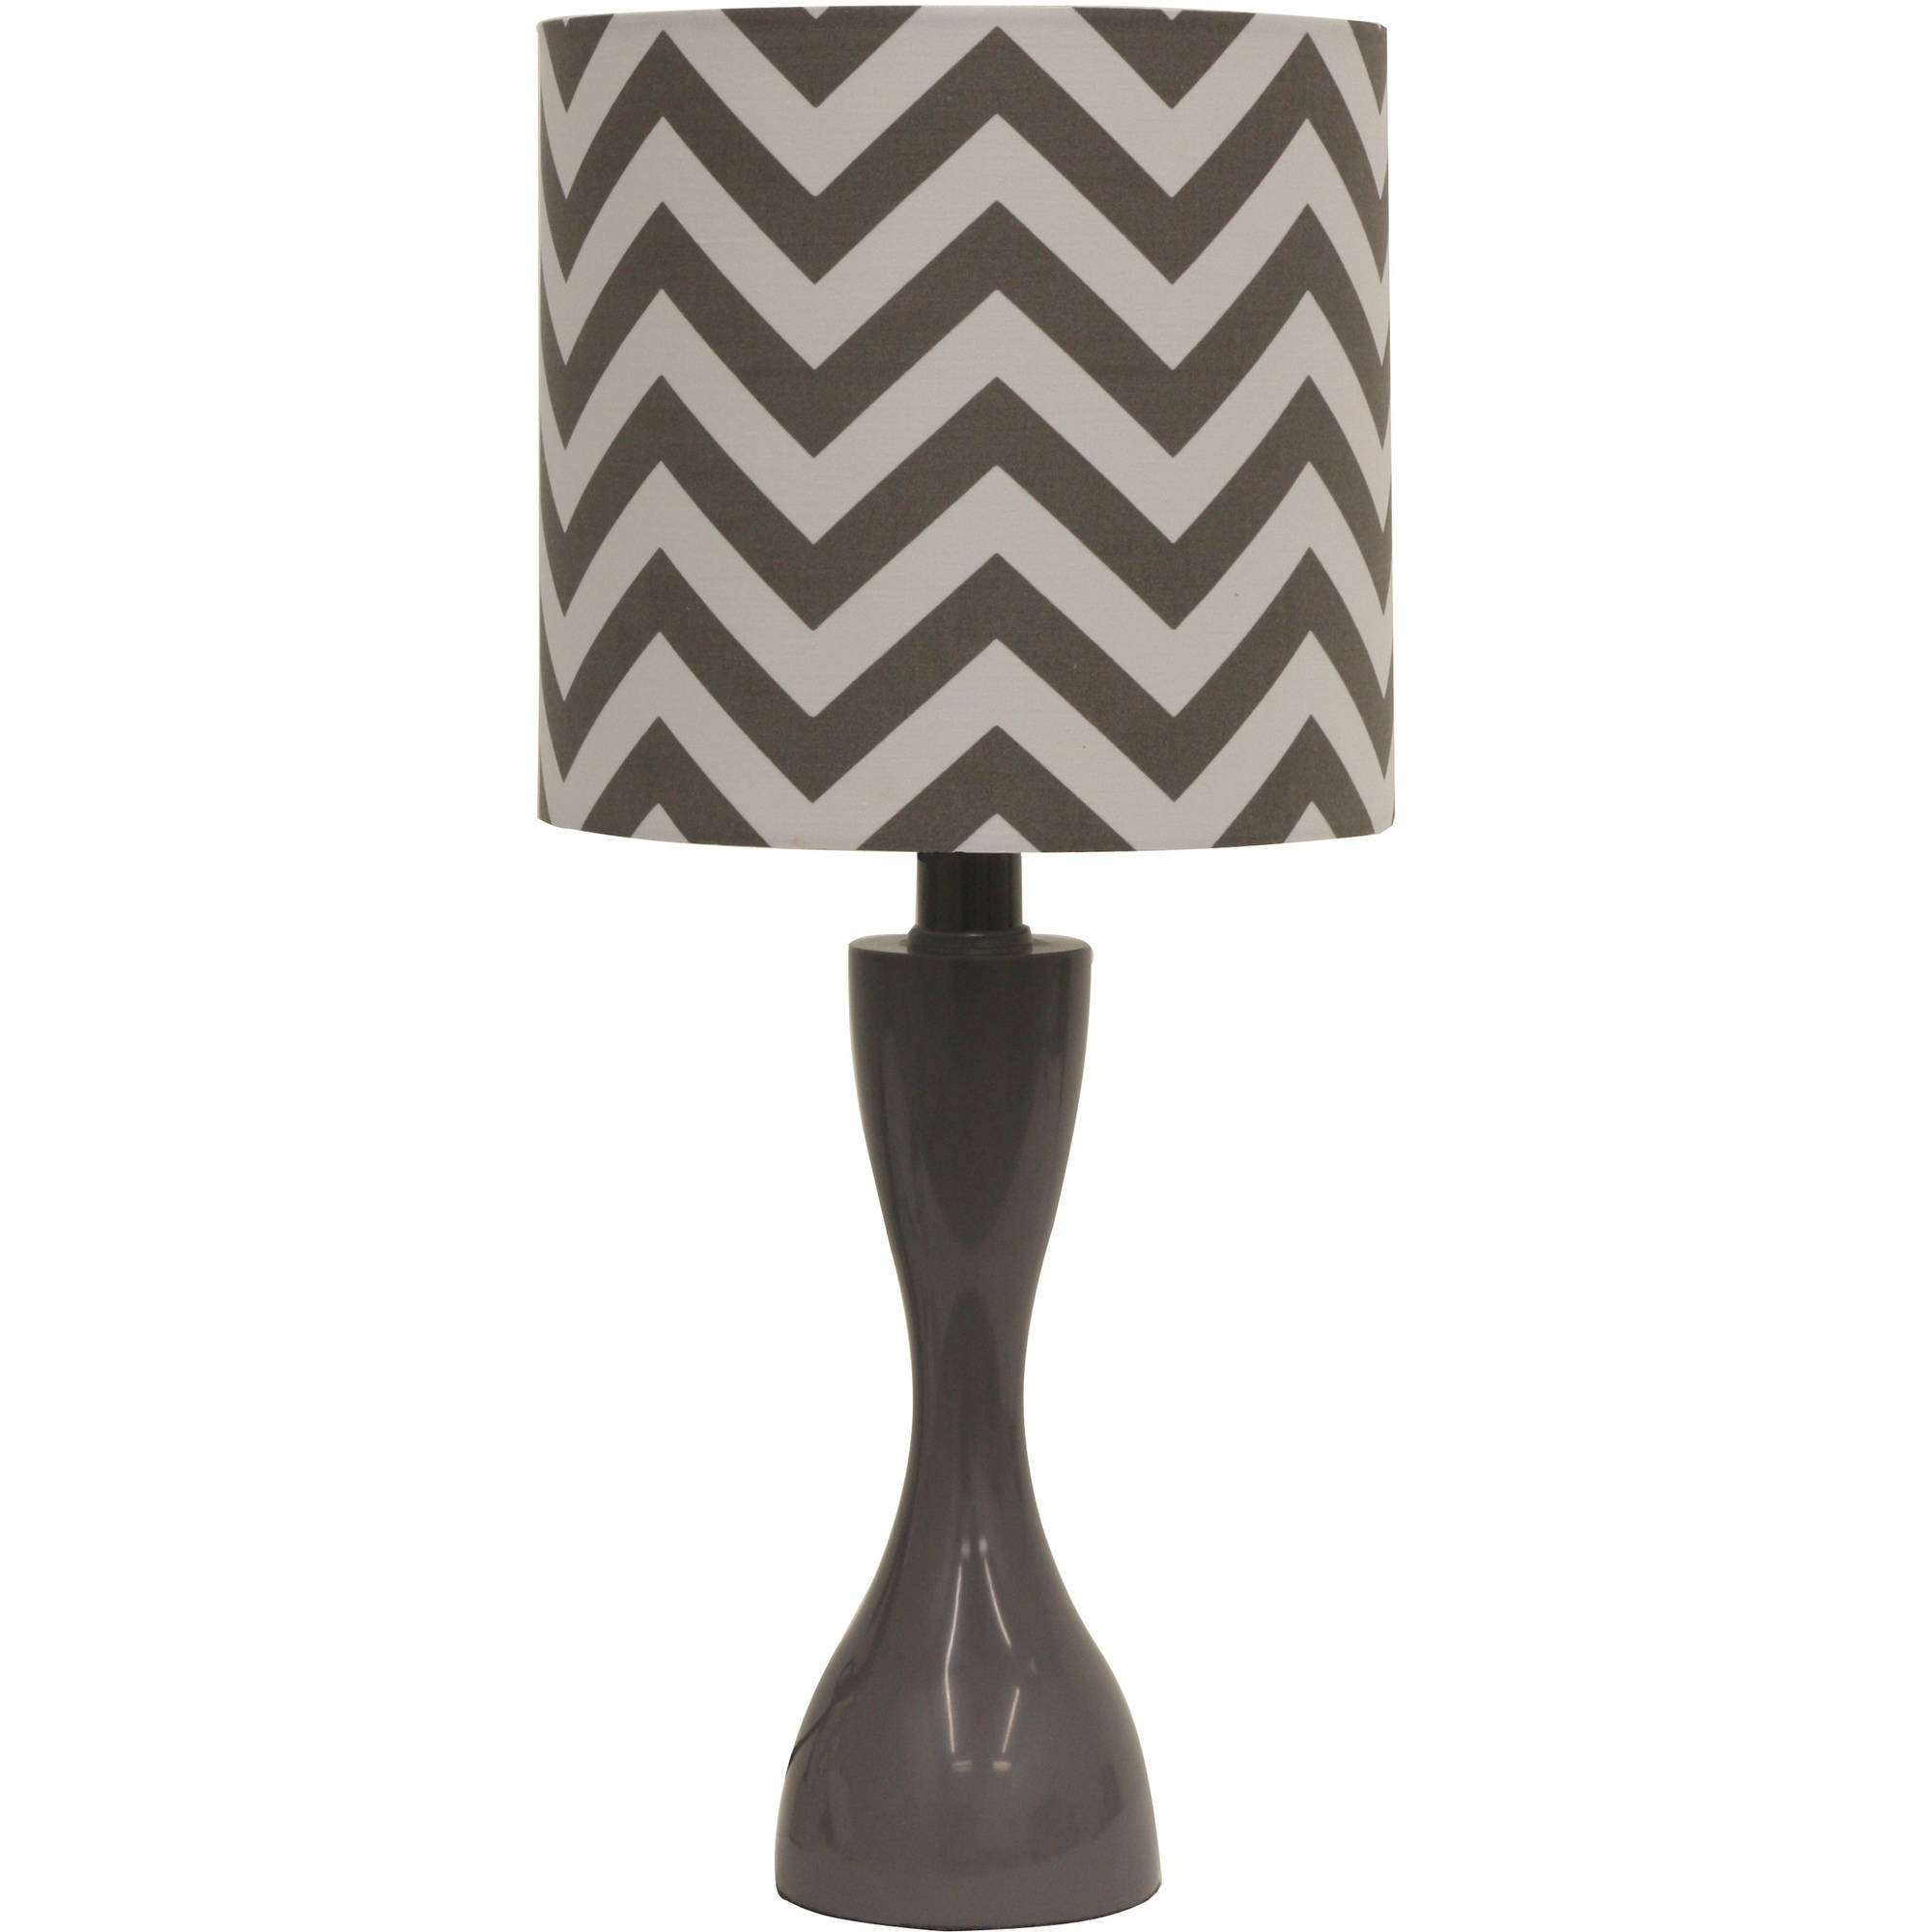 Mainstays Gray Chevron Table Lamp with CFL Bulb by JIMCO LAMP CO.